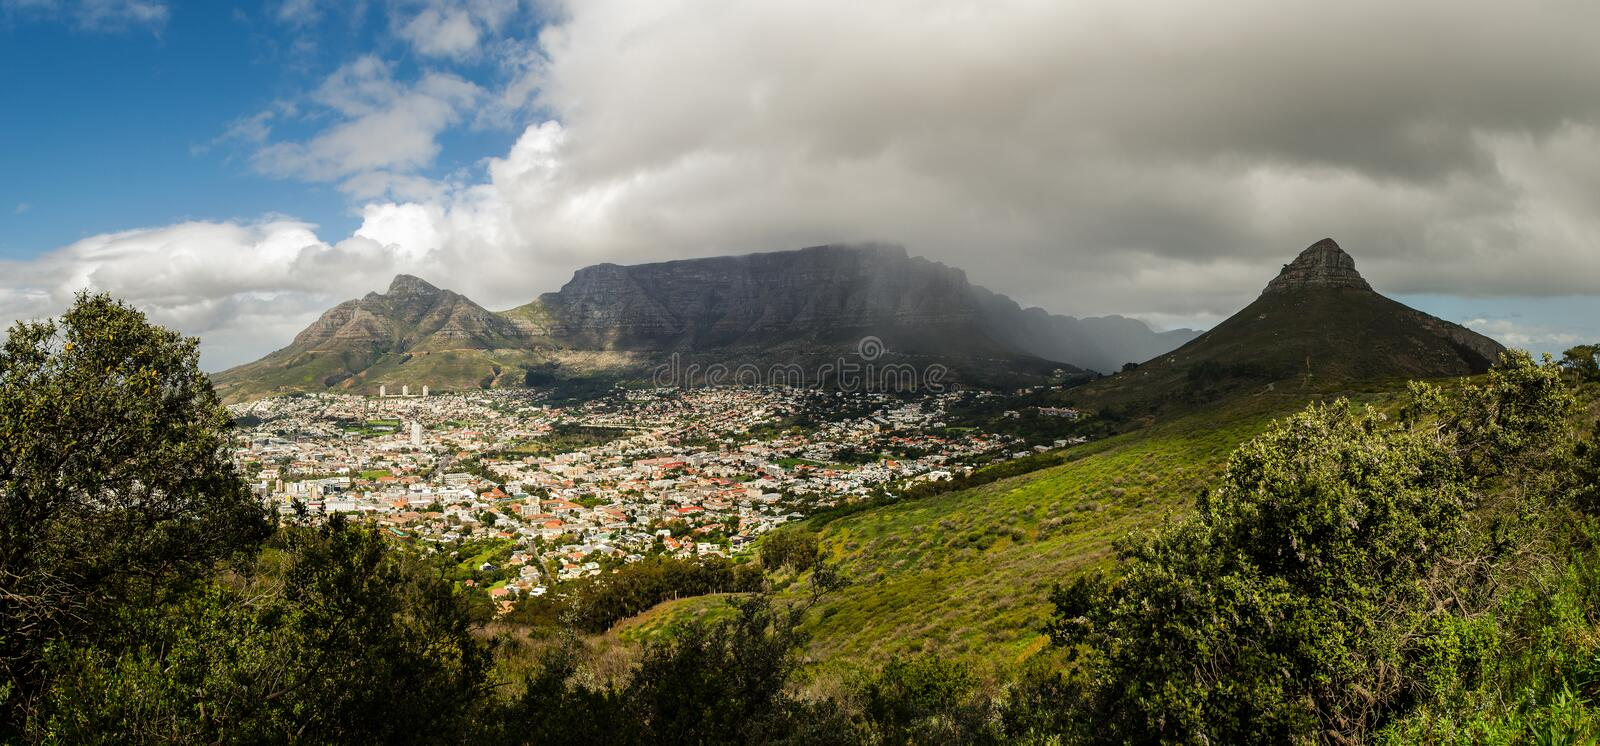 Table mountain, Cape Town, delvil`s peak, lion head panoramic landscape. South Africa. royalty free stock photography